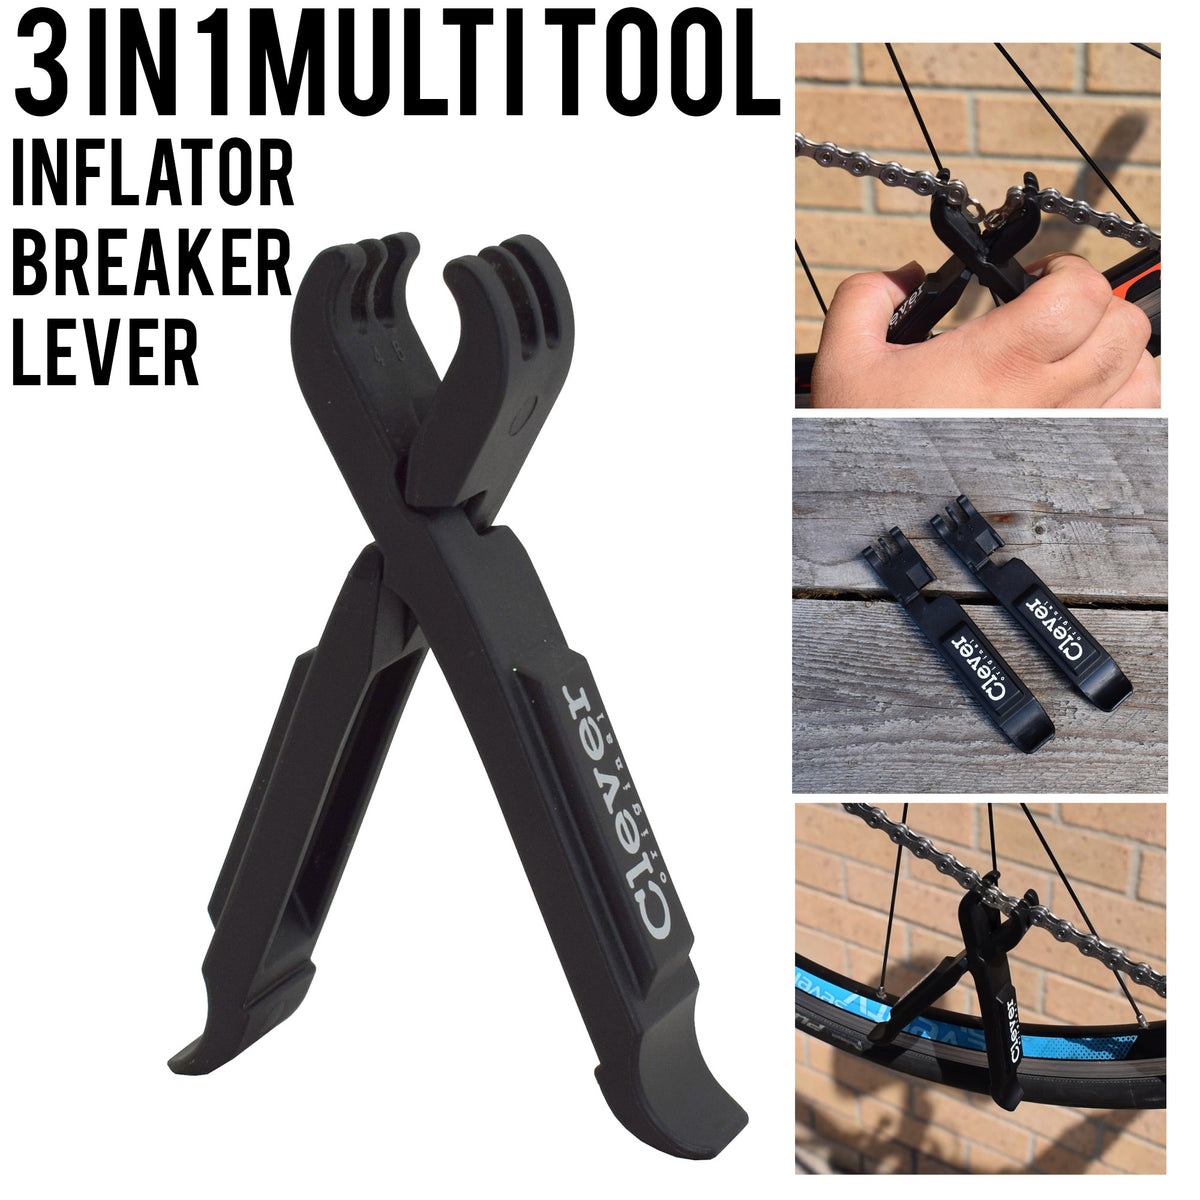 VELOCHAMPION 2 in 1 Heavy Duty Tyre Levers and Missing Link Chain Opener - Velochampion